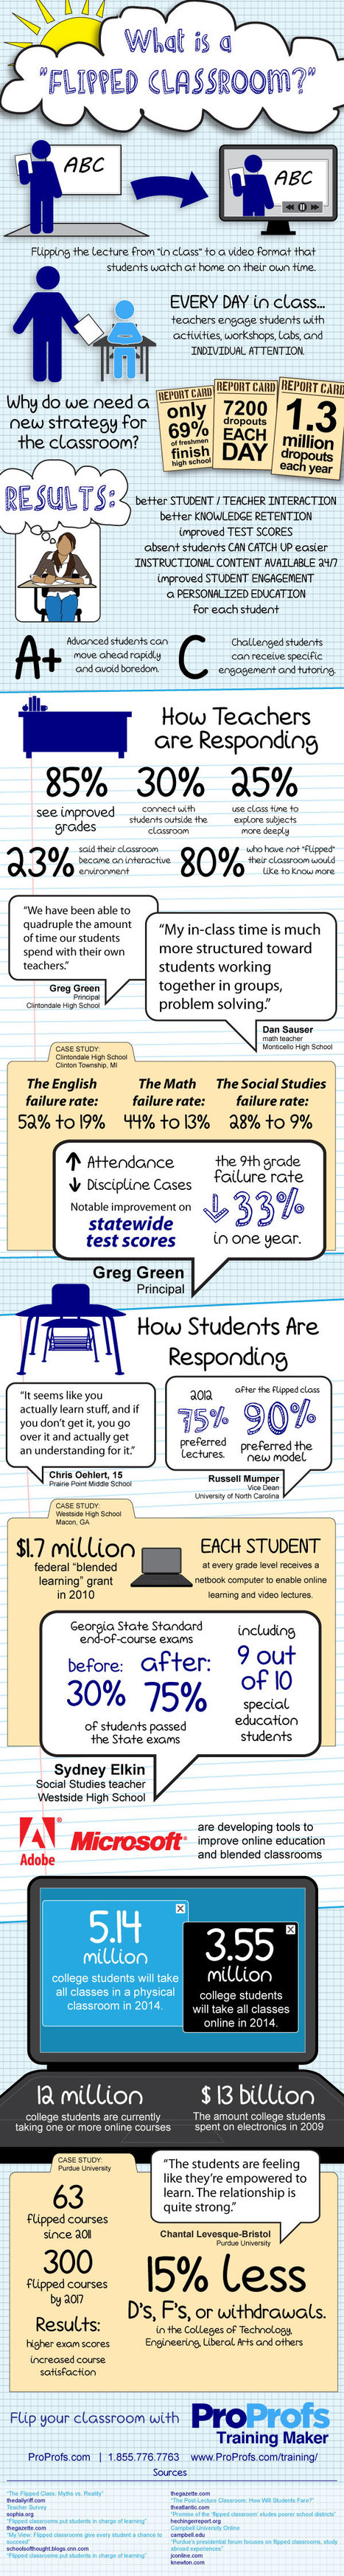 Descubre qué es The Flipped Classroom #infografia #infographic #education | #Knowledge Management & #Innovation | Scoop.it